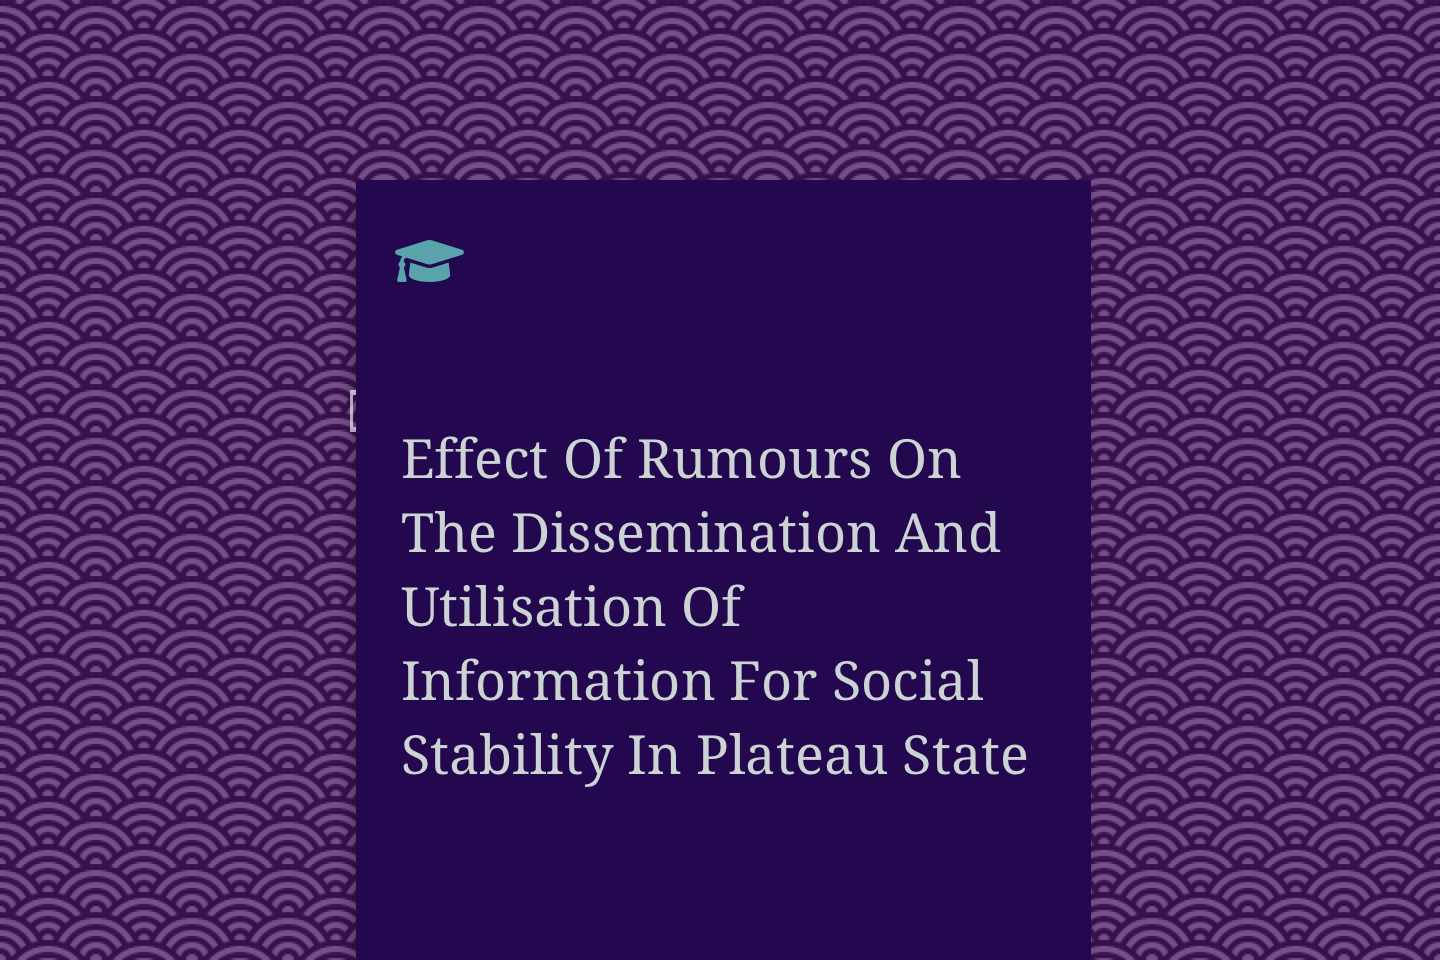 EFFECT OF RUMOURS ON THE DISSEMINATION AND UTILISATION OF INFORMATION FOR SOCIAL STABILITY IN PLATEAU STATE